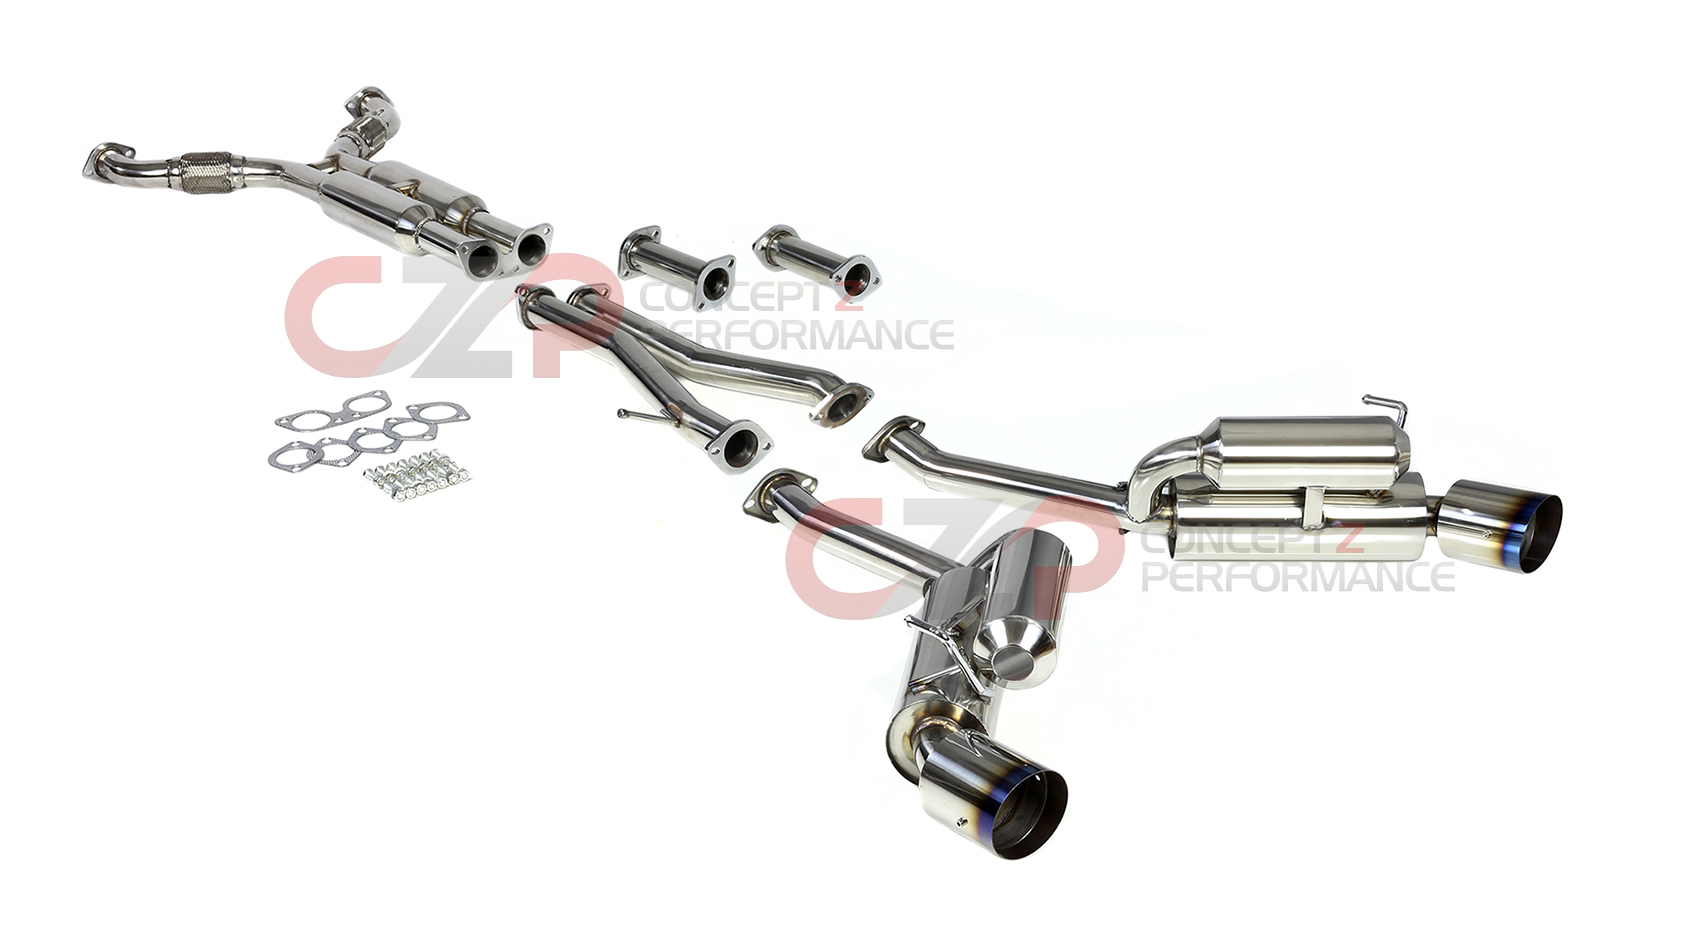 DNA Motoring True Dual Catback Exhaust System w/ Burnt Tips - Nissan 350Z 03-08 Z33